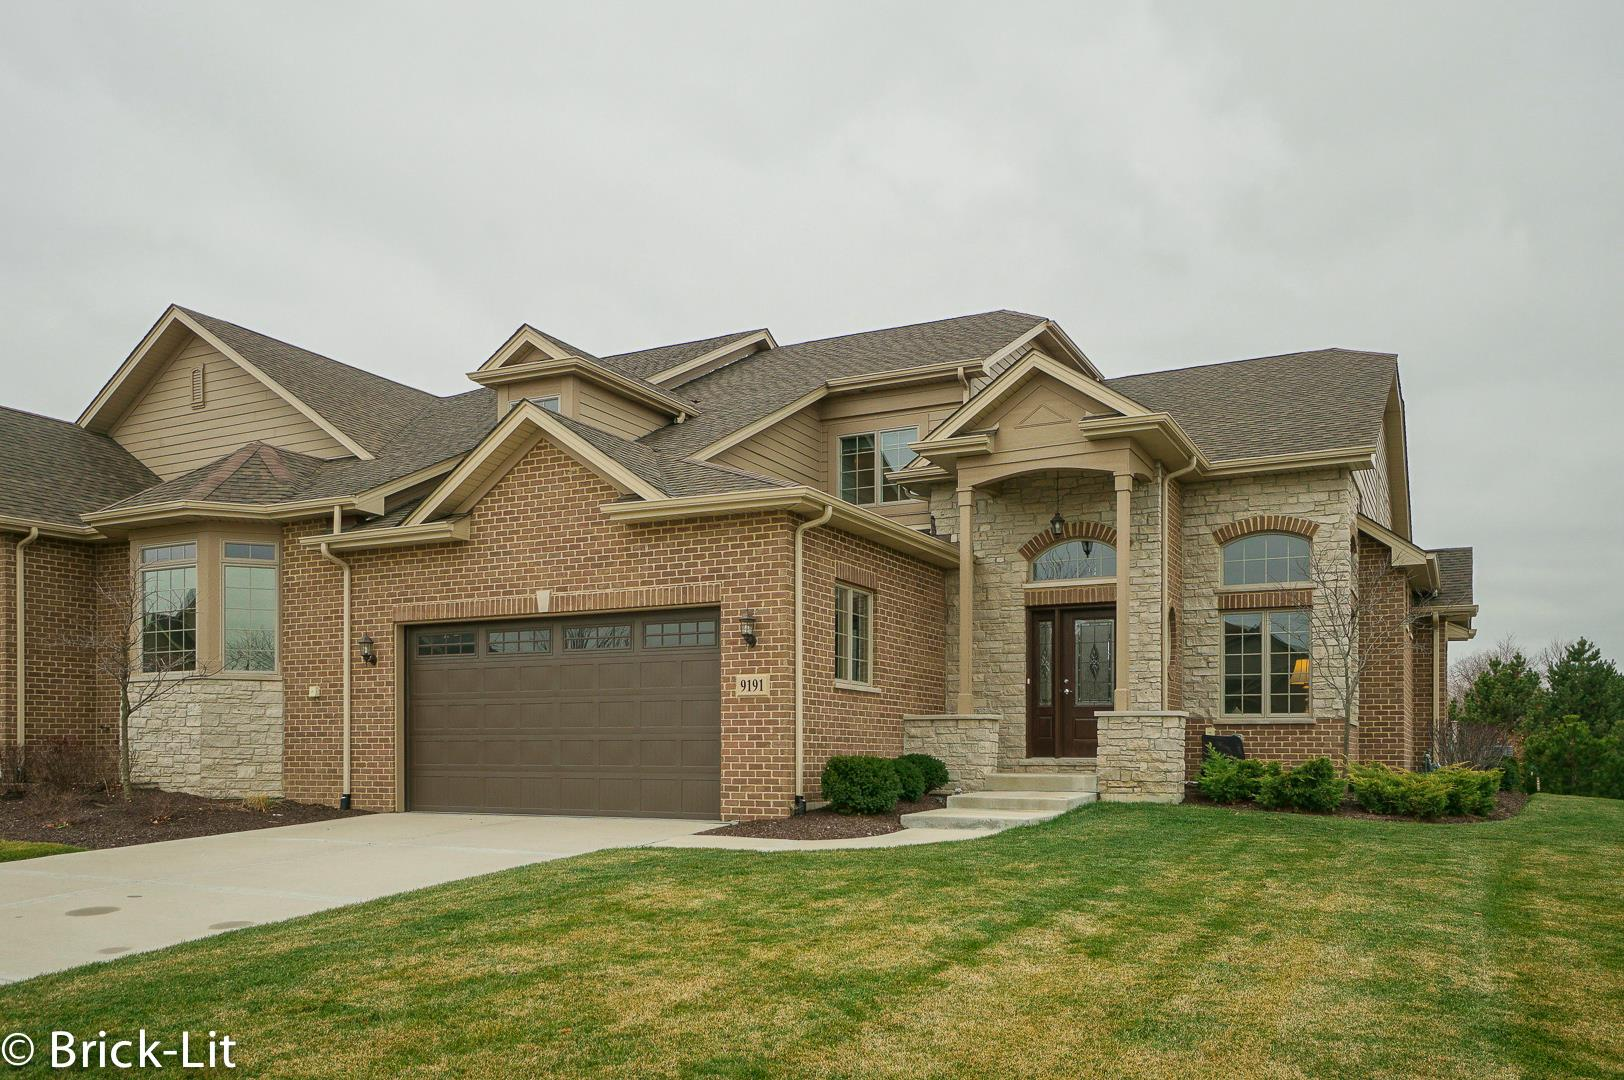 9191 Holland Harbor Circle, Frankfort, IL 60423 - #: 10952816